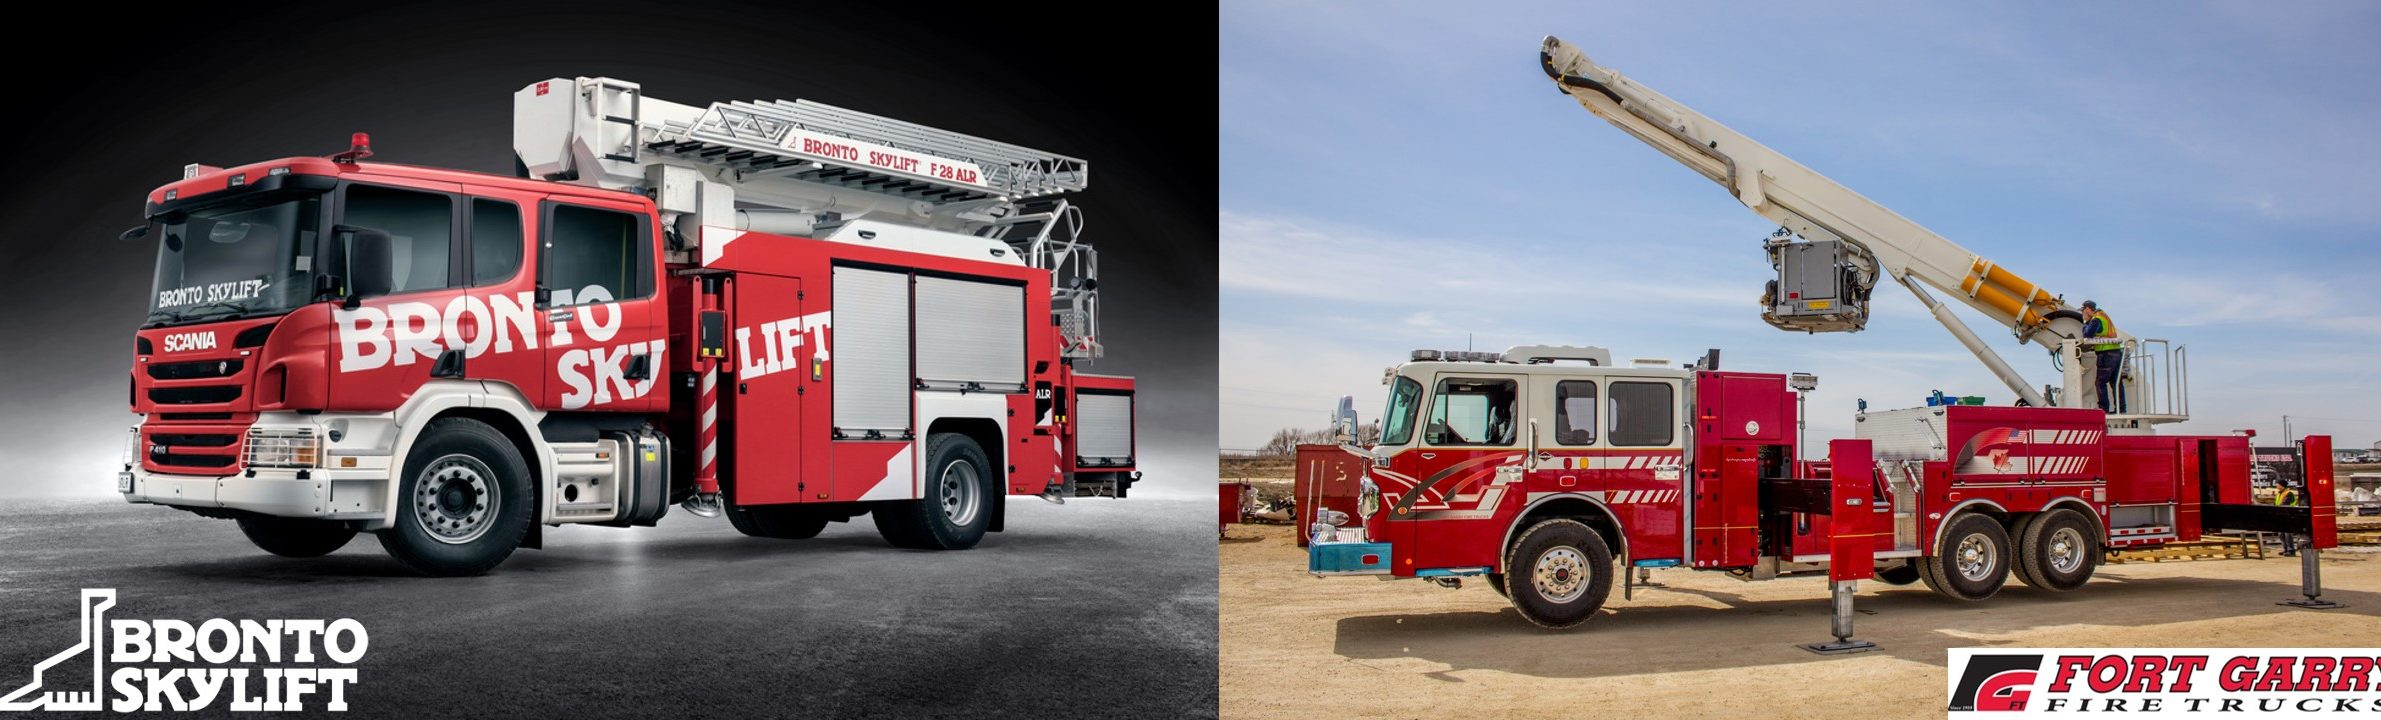 Bronto Skylift - Fort Garry Fire Trucks